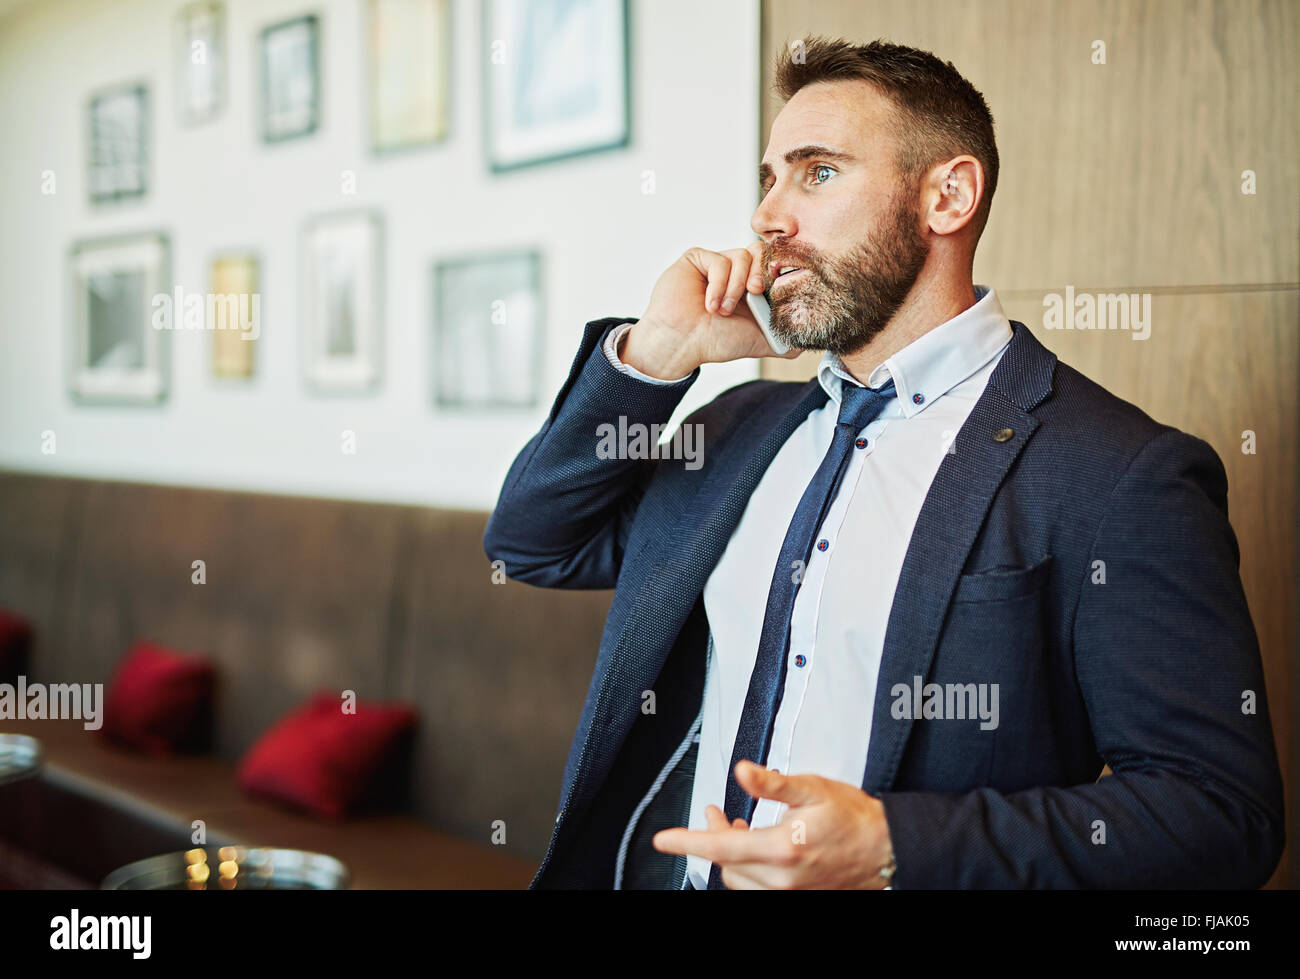 Young businessman speaking on the phone at office - Stock Image